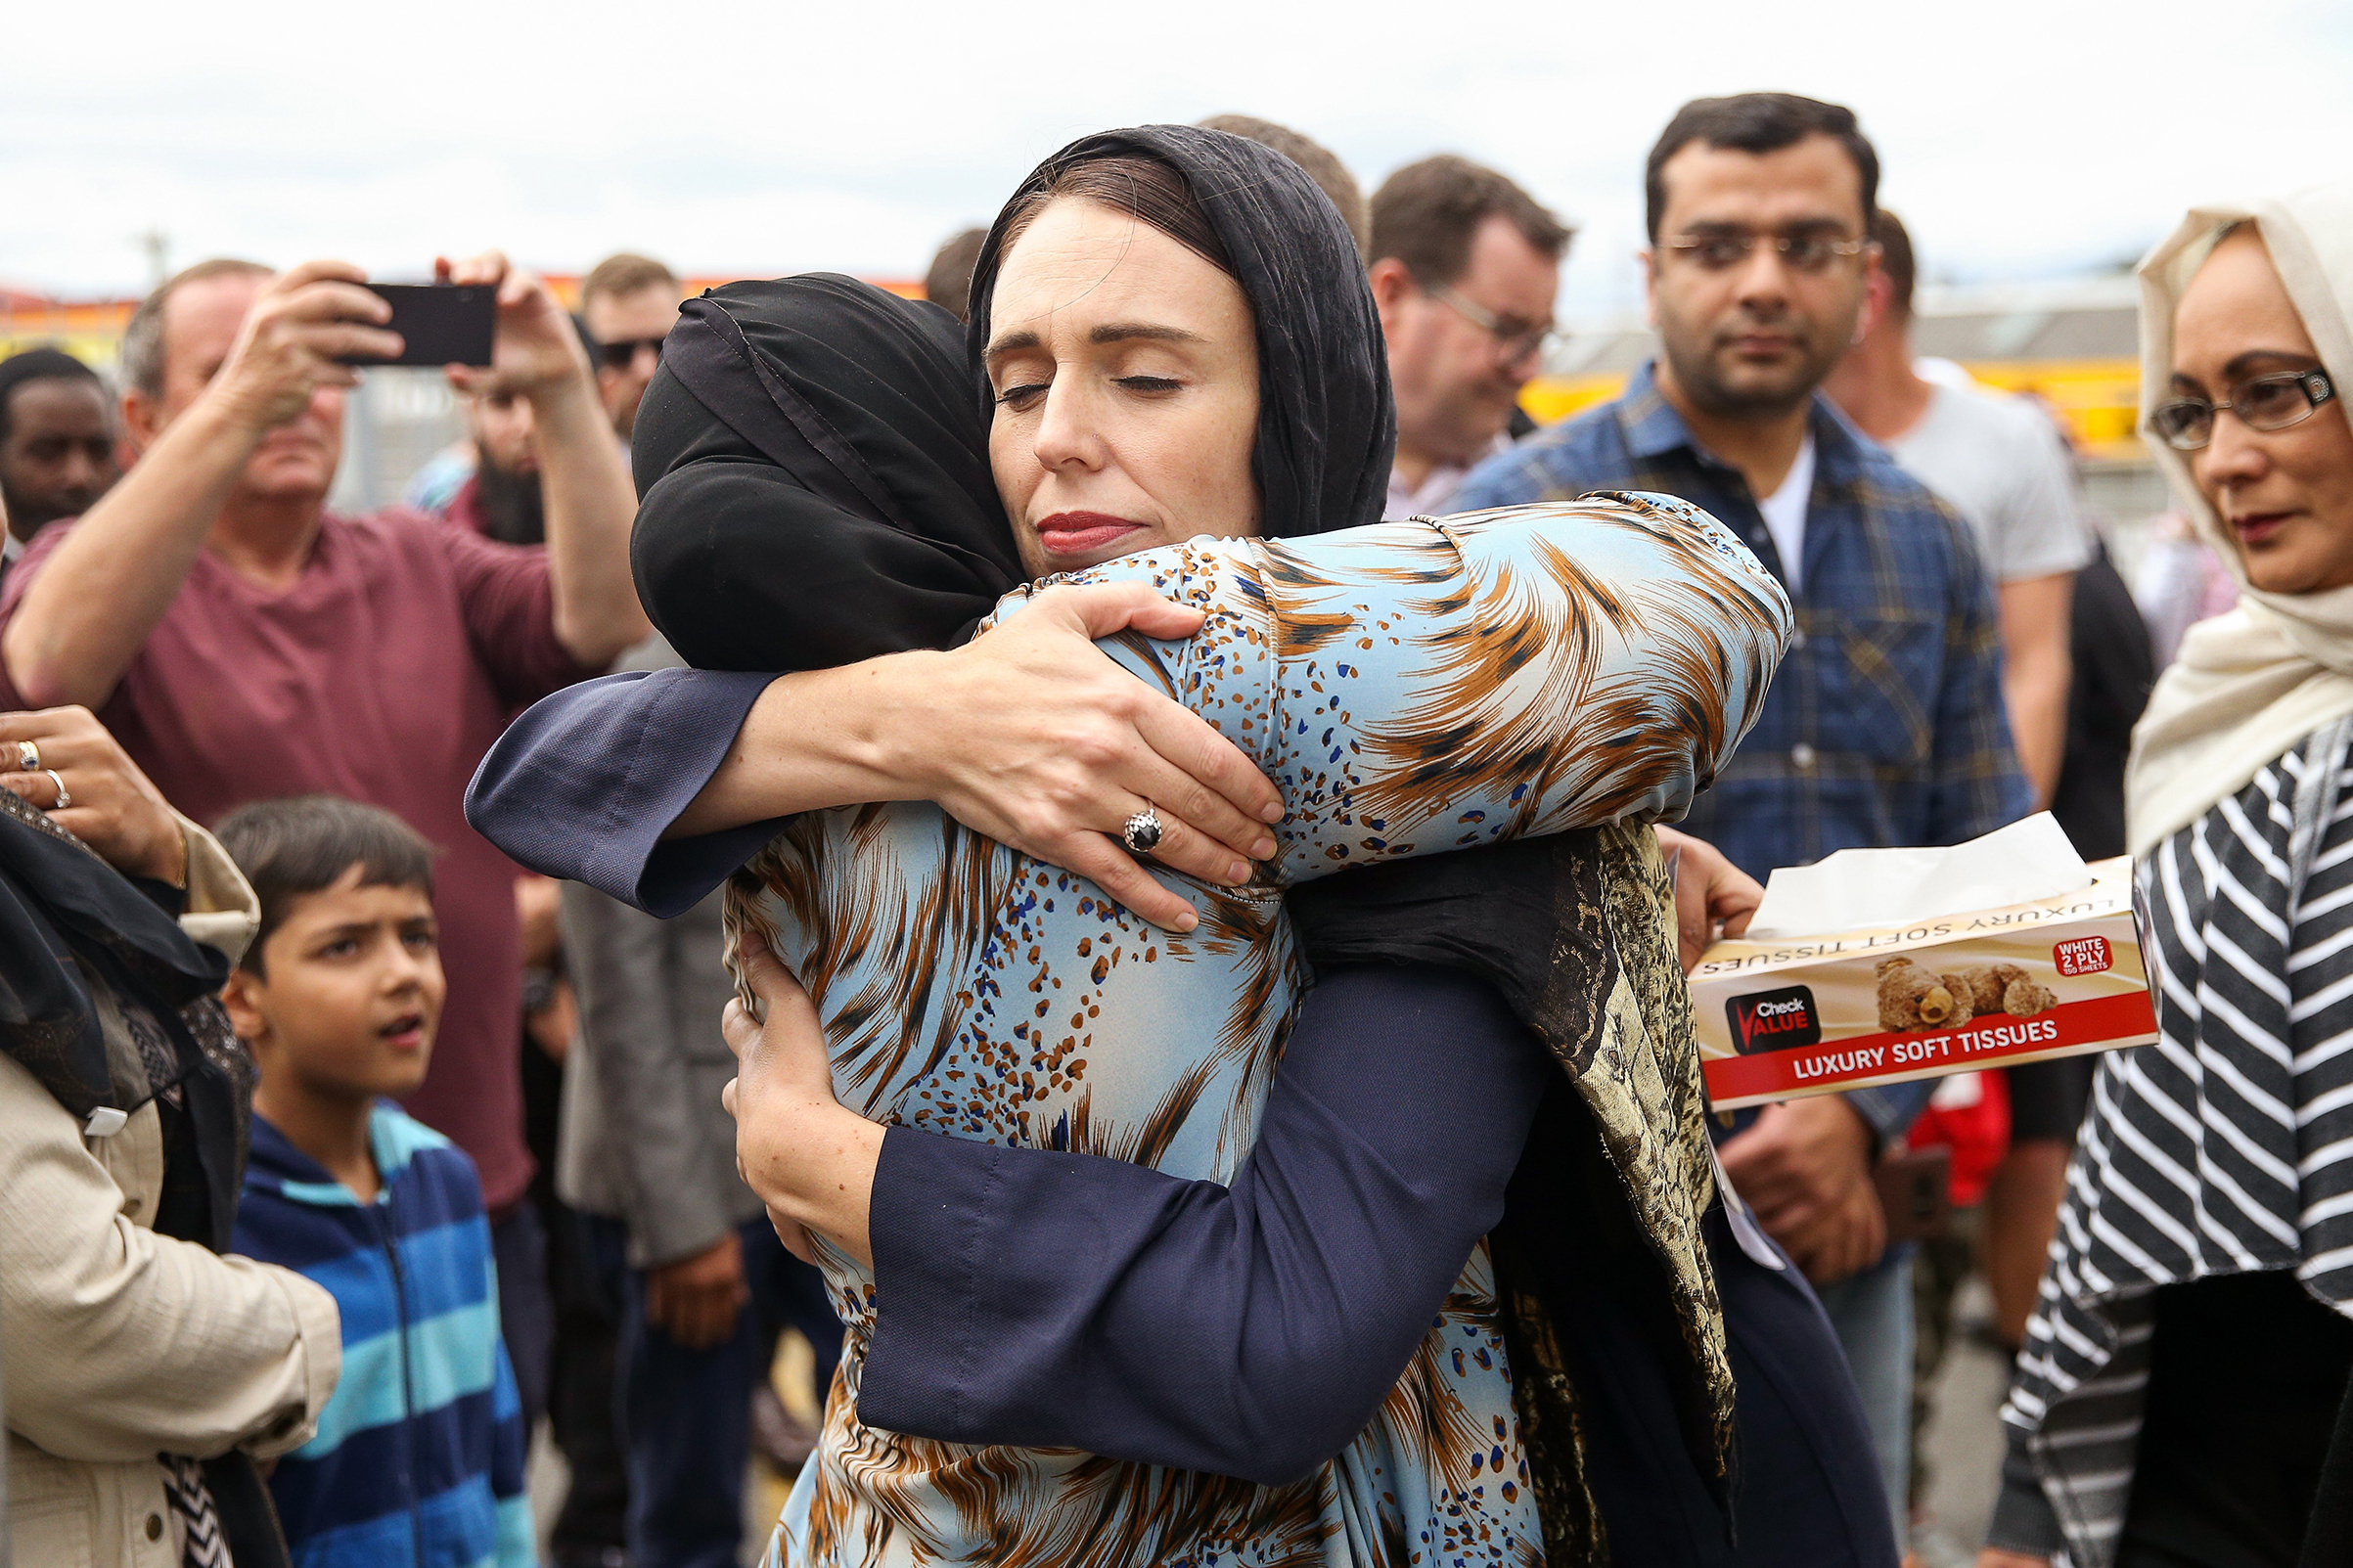 New Zealand Prime Minister Jacinda Ardern hugs a worshipper at Kilbirnie Mosque in Wellington two days after the attacks